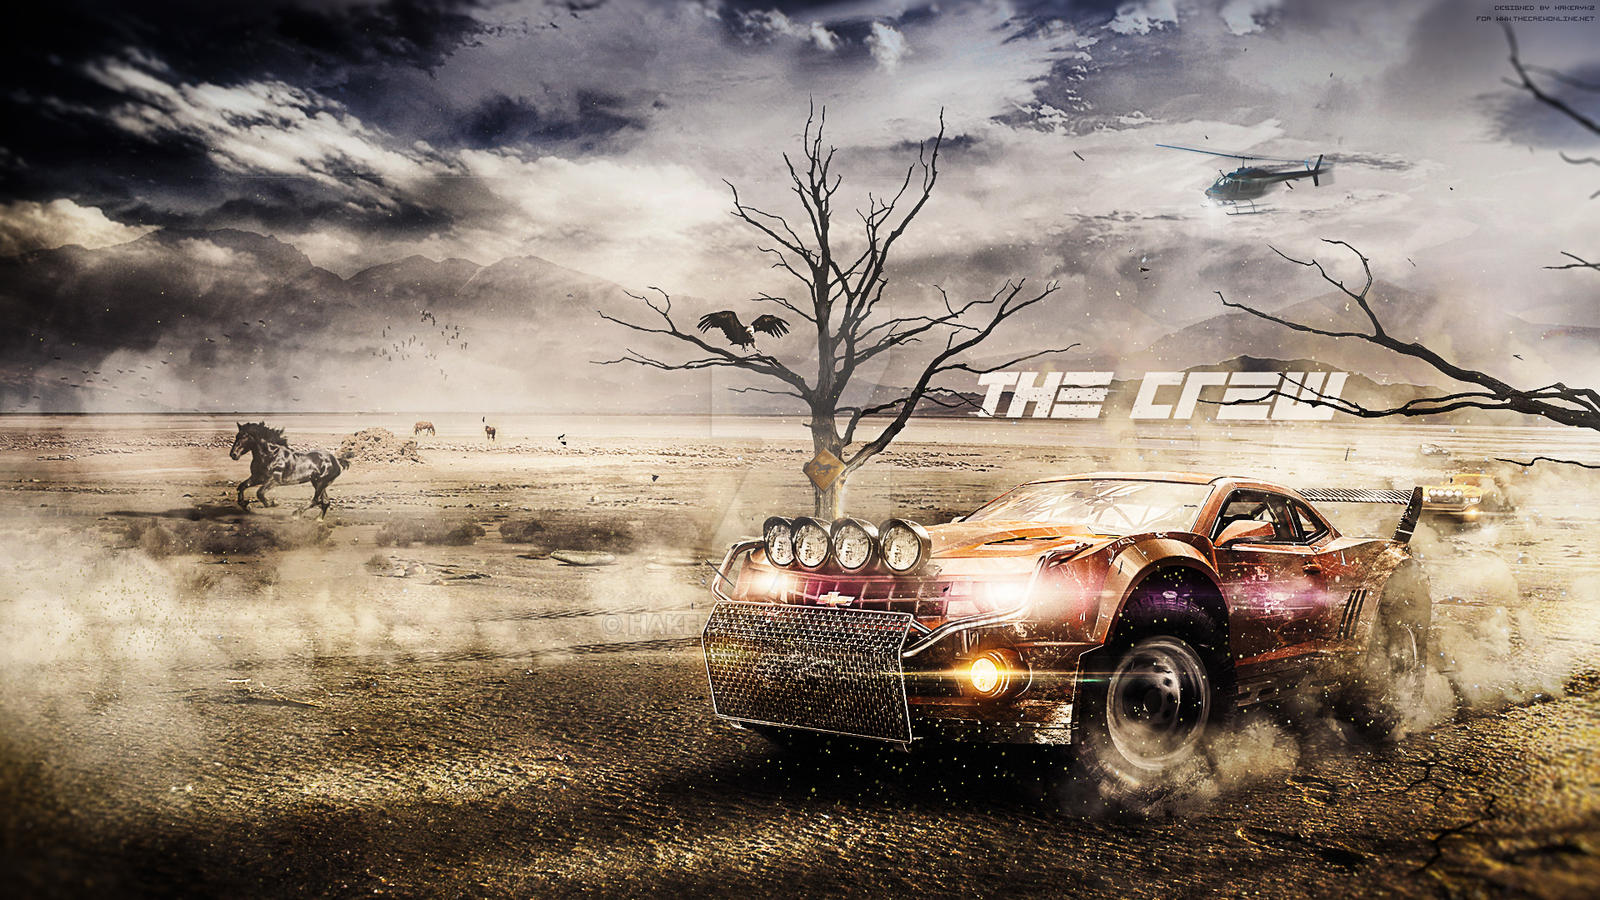 <b>The Crew Wallpaper</b> - CNSouP Collections